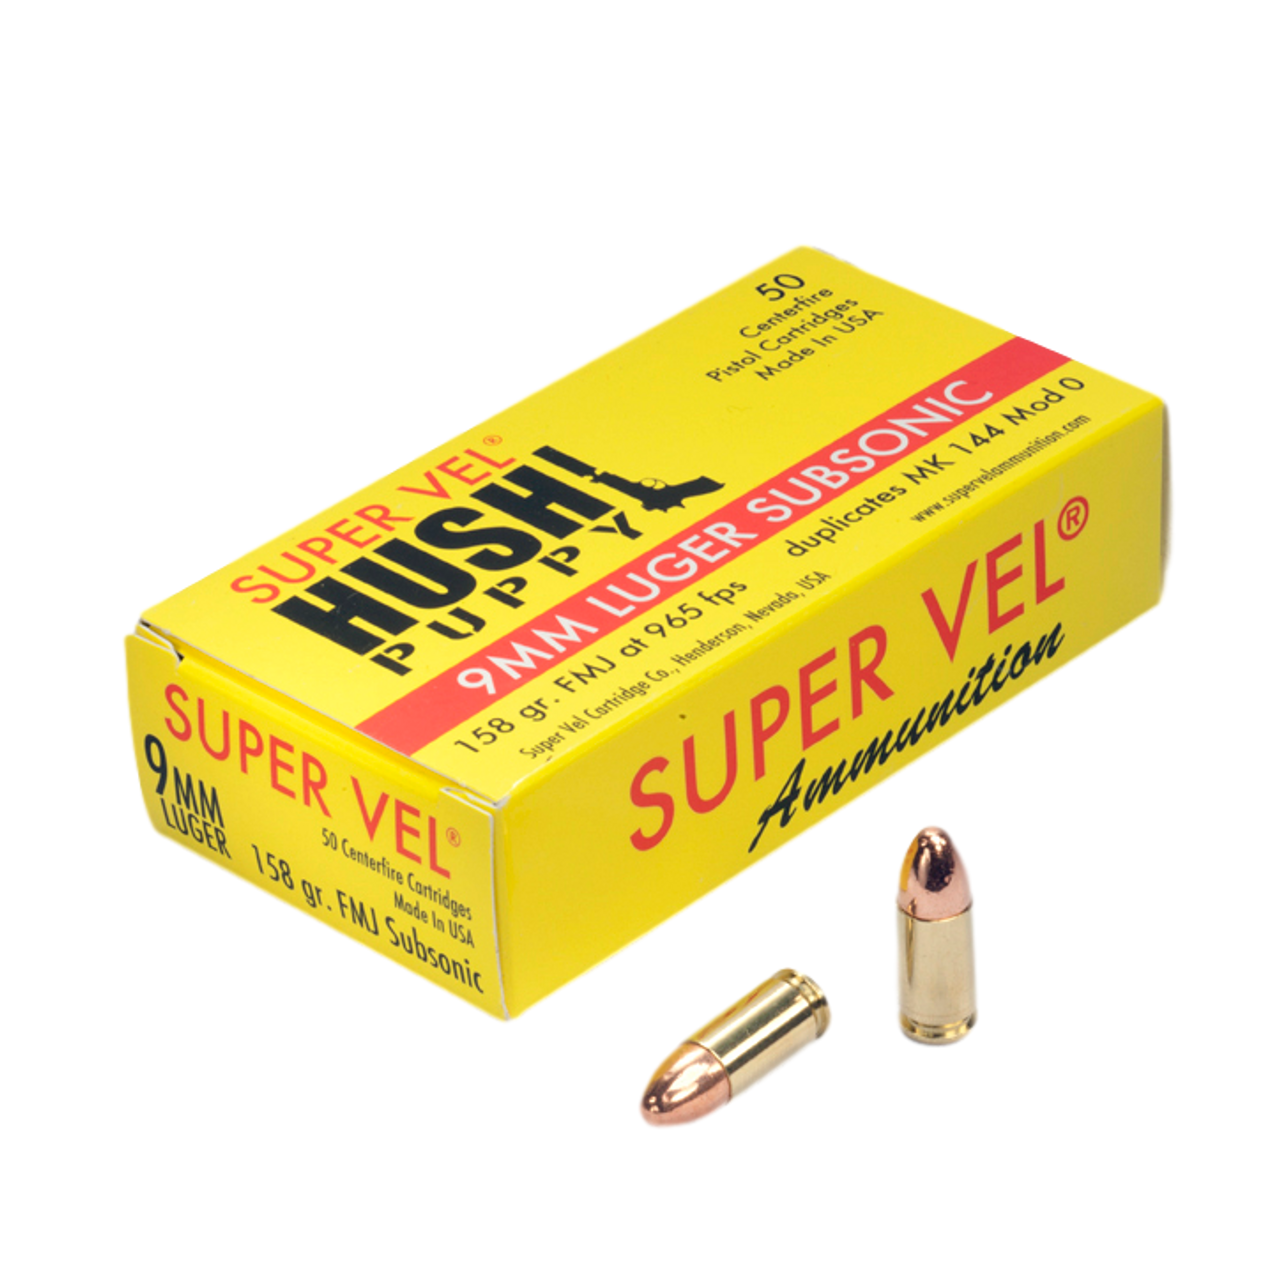 """9mm Luger Sub. 158 gr. FMJ """"Hush Puppy"""" (50-count box)"""